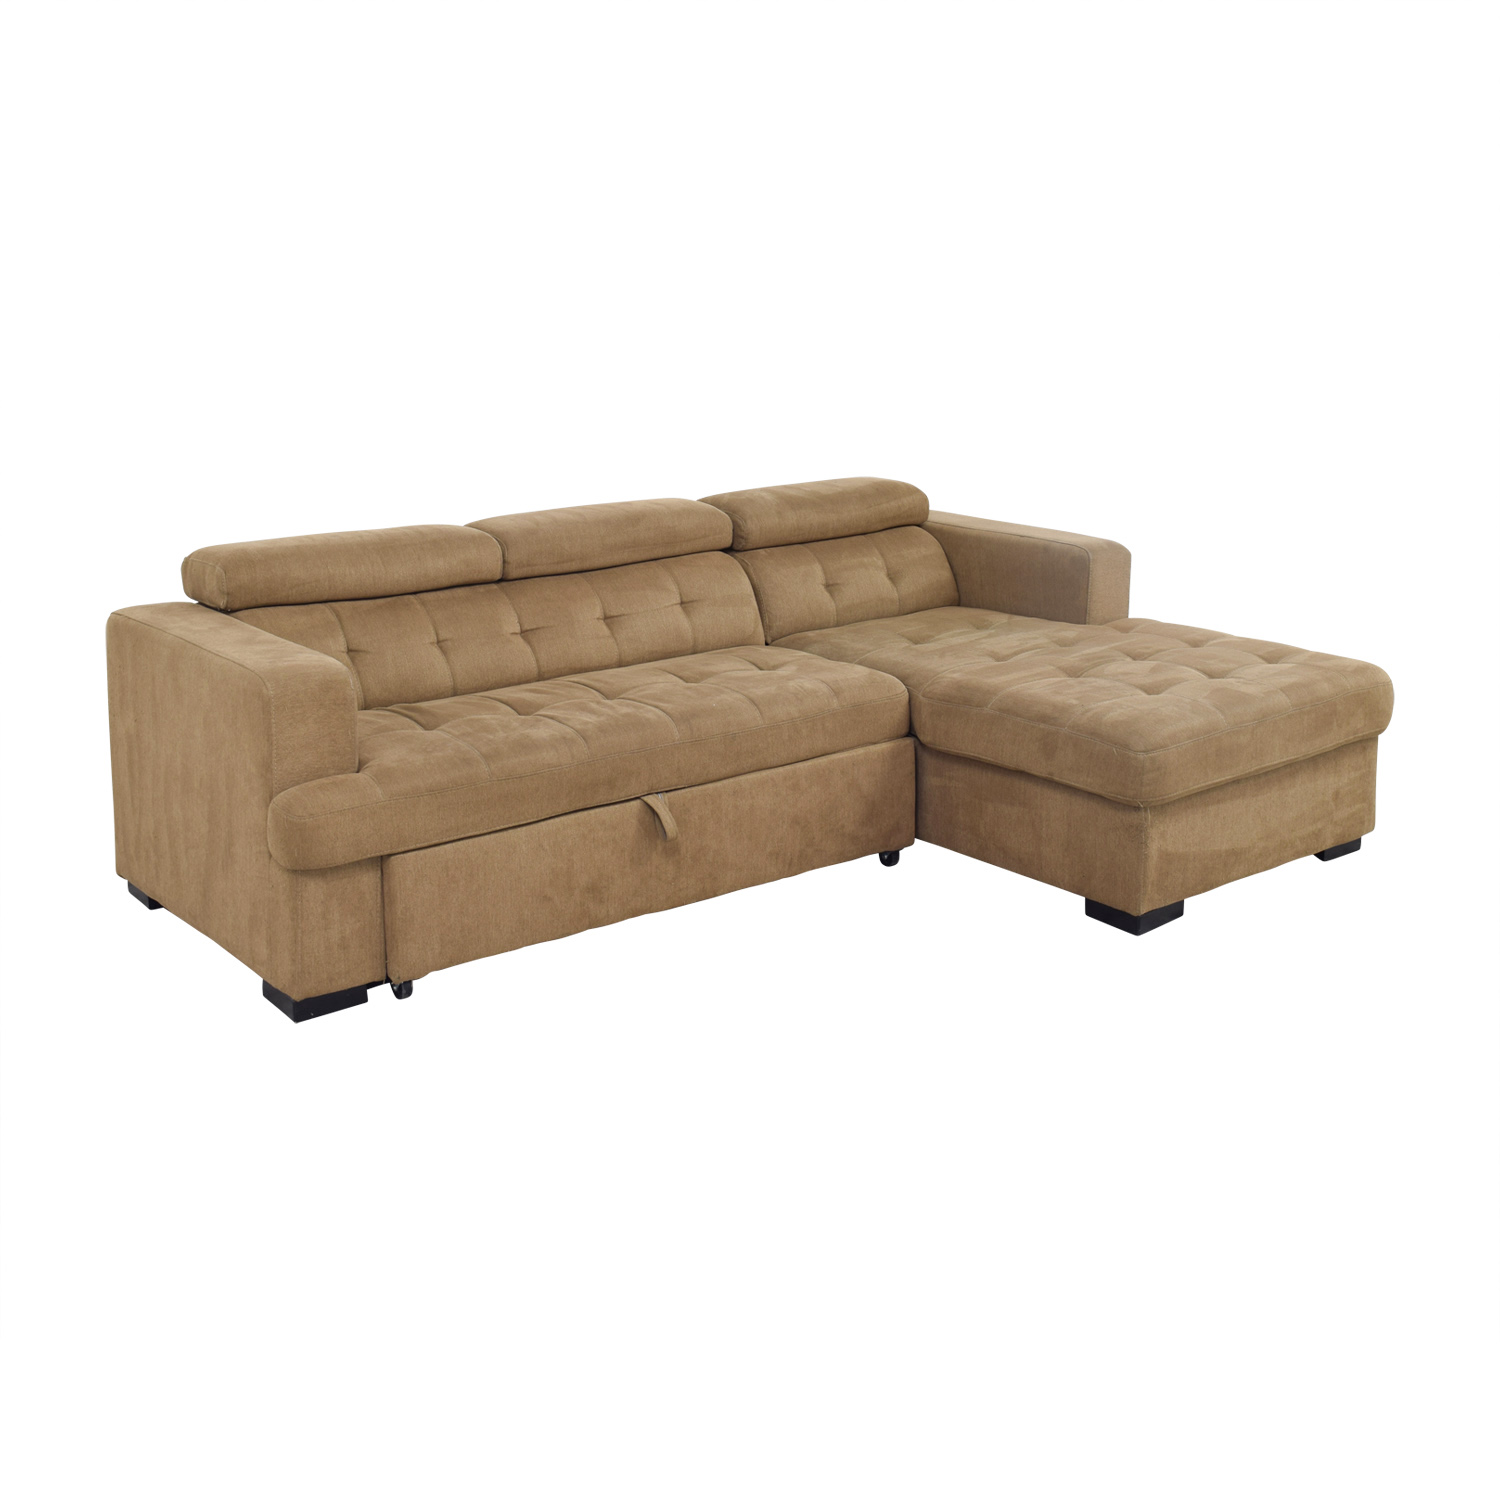 40 Off Bob S Furniture Bob S Furniture Brown Pull Out